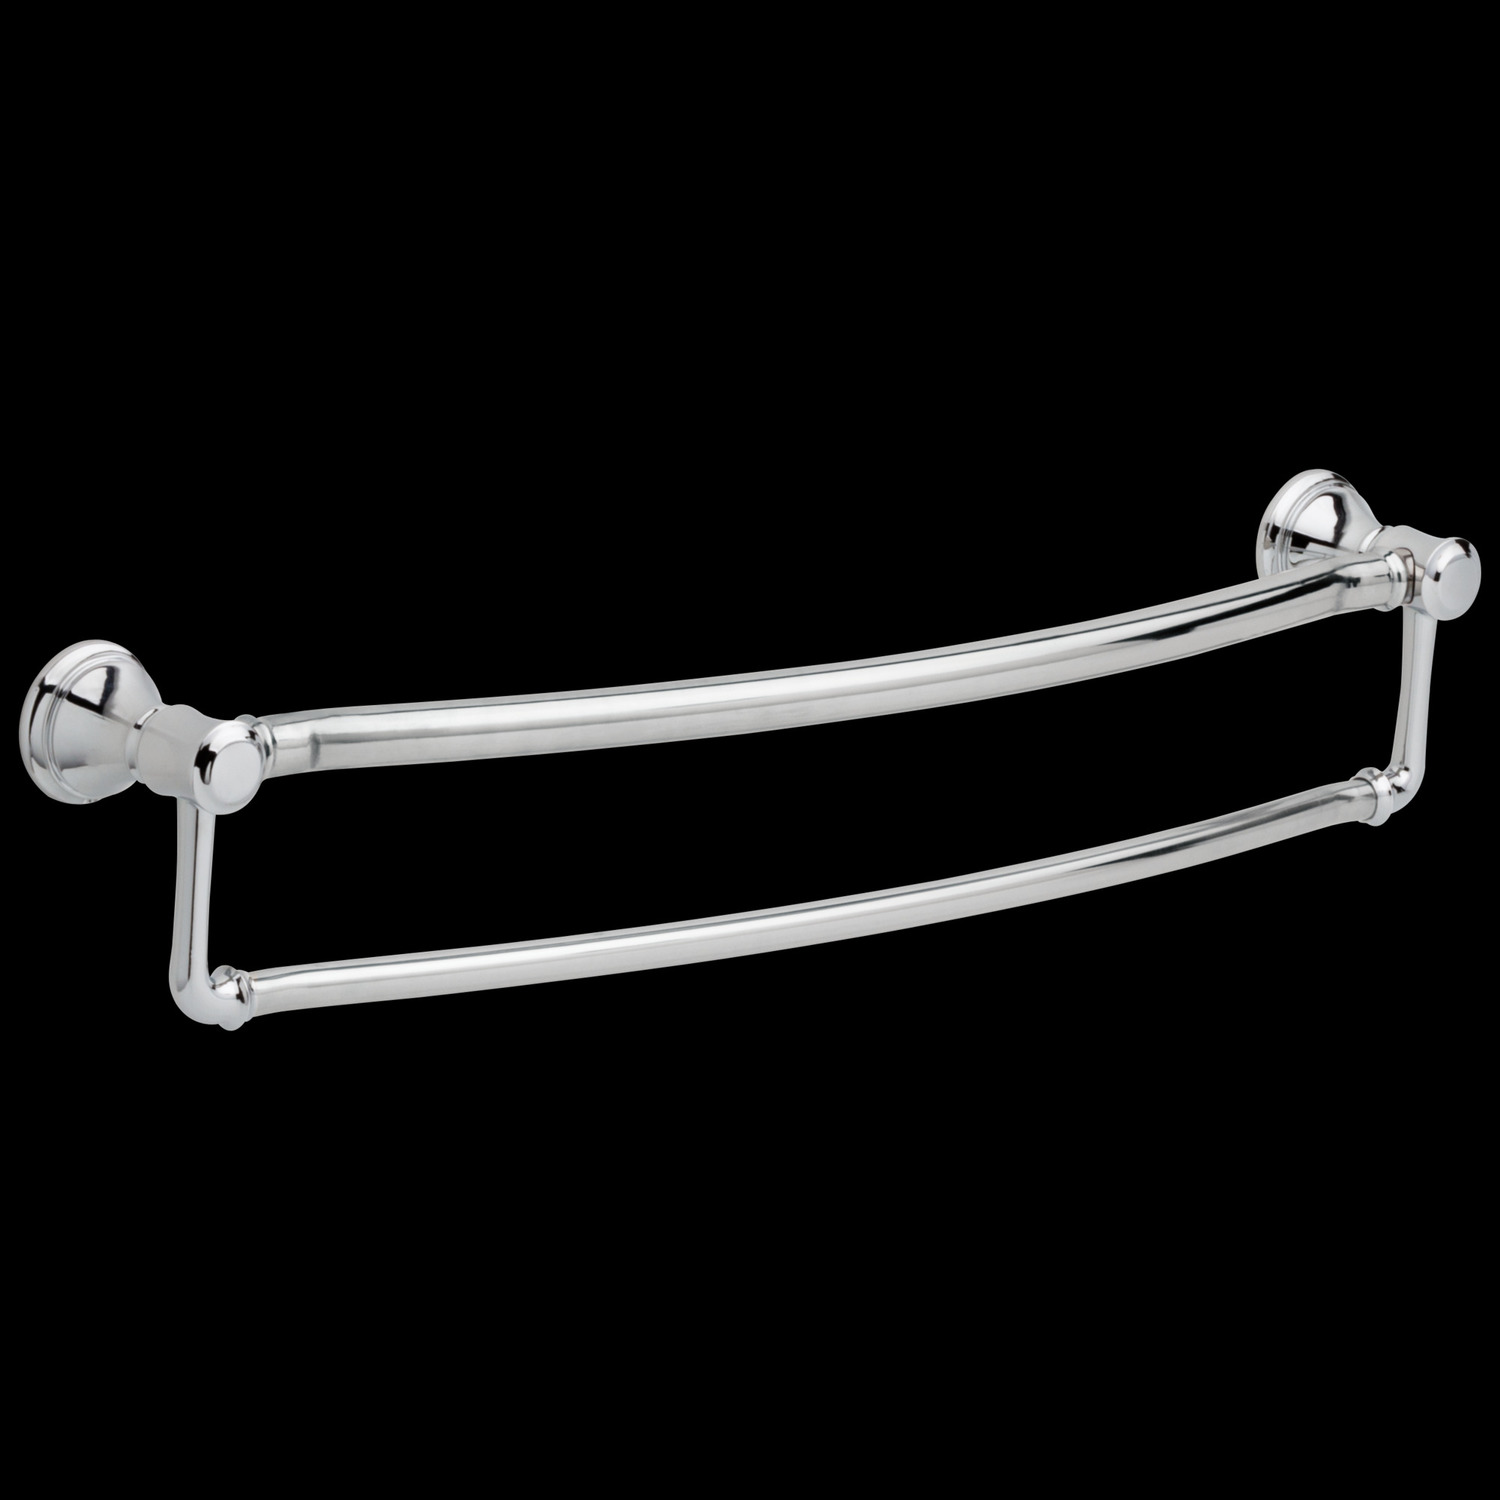 "Chrome 24"" Traditional Towel Bar with Assist Bar"